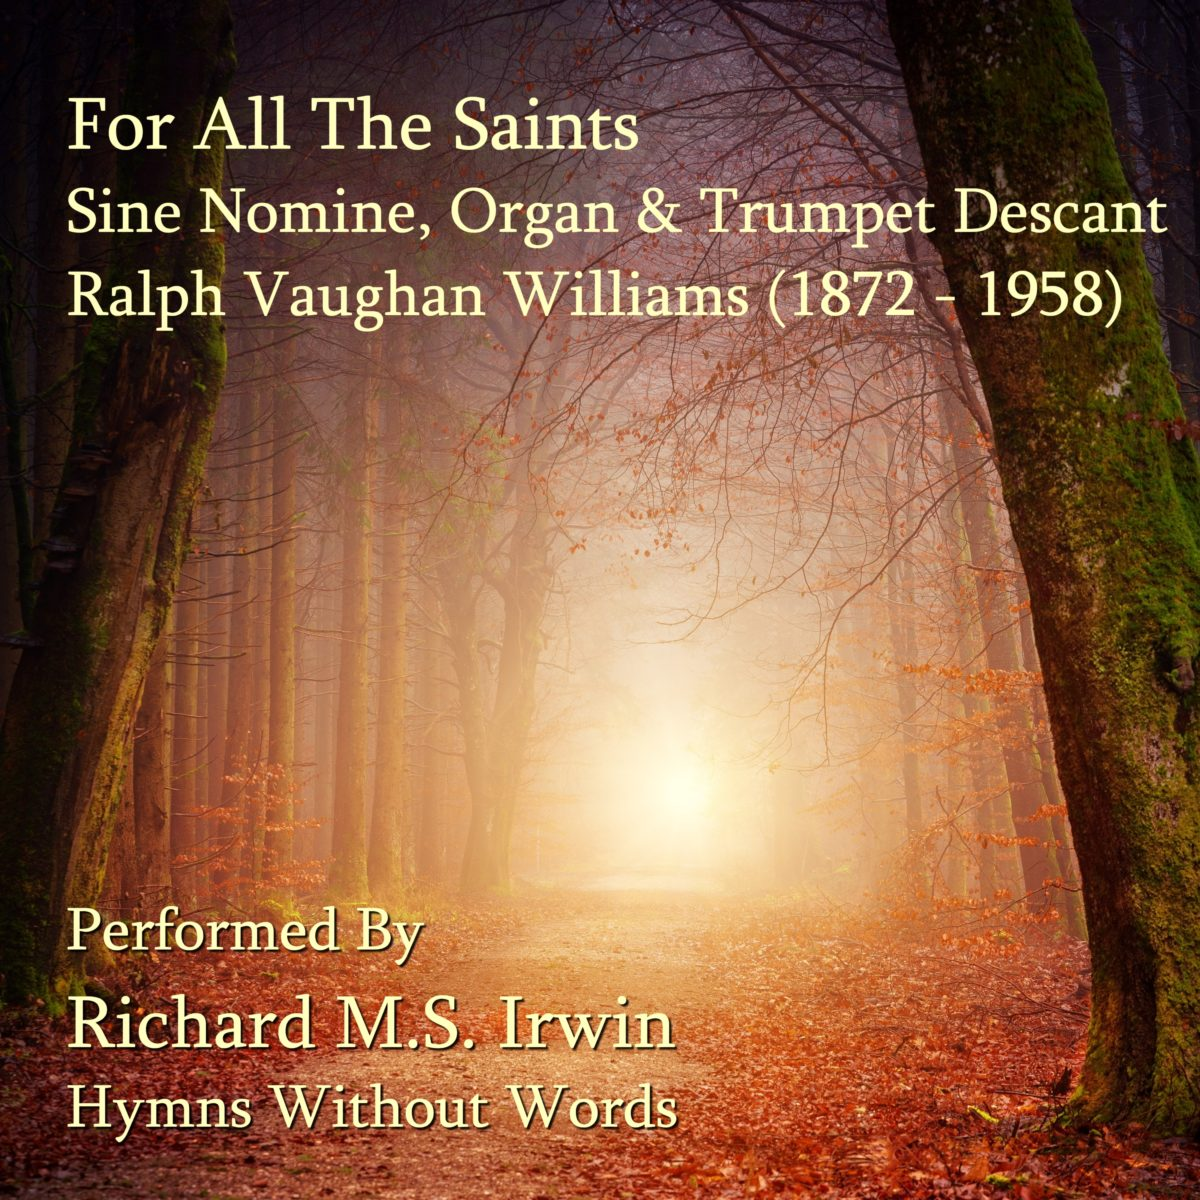 For All The Saints (Sine Nomine, Organ & Trumpet Descant, 6 Verses)